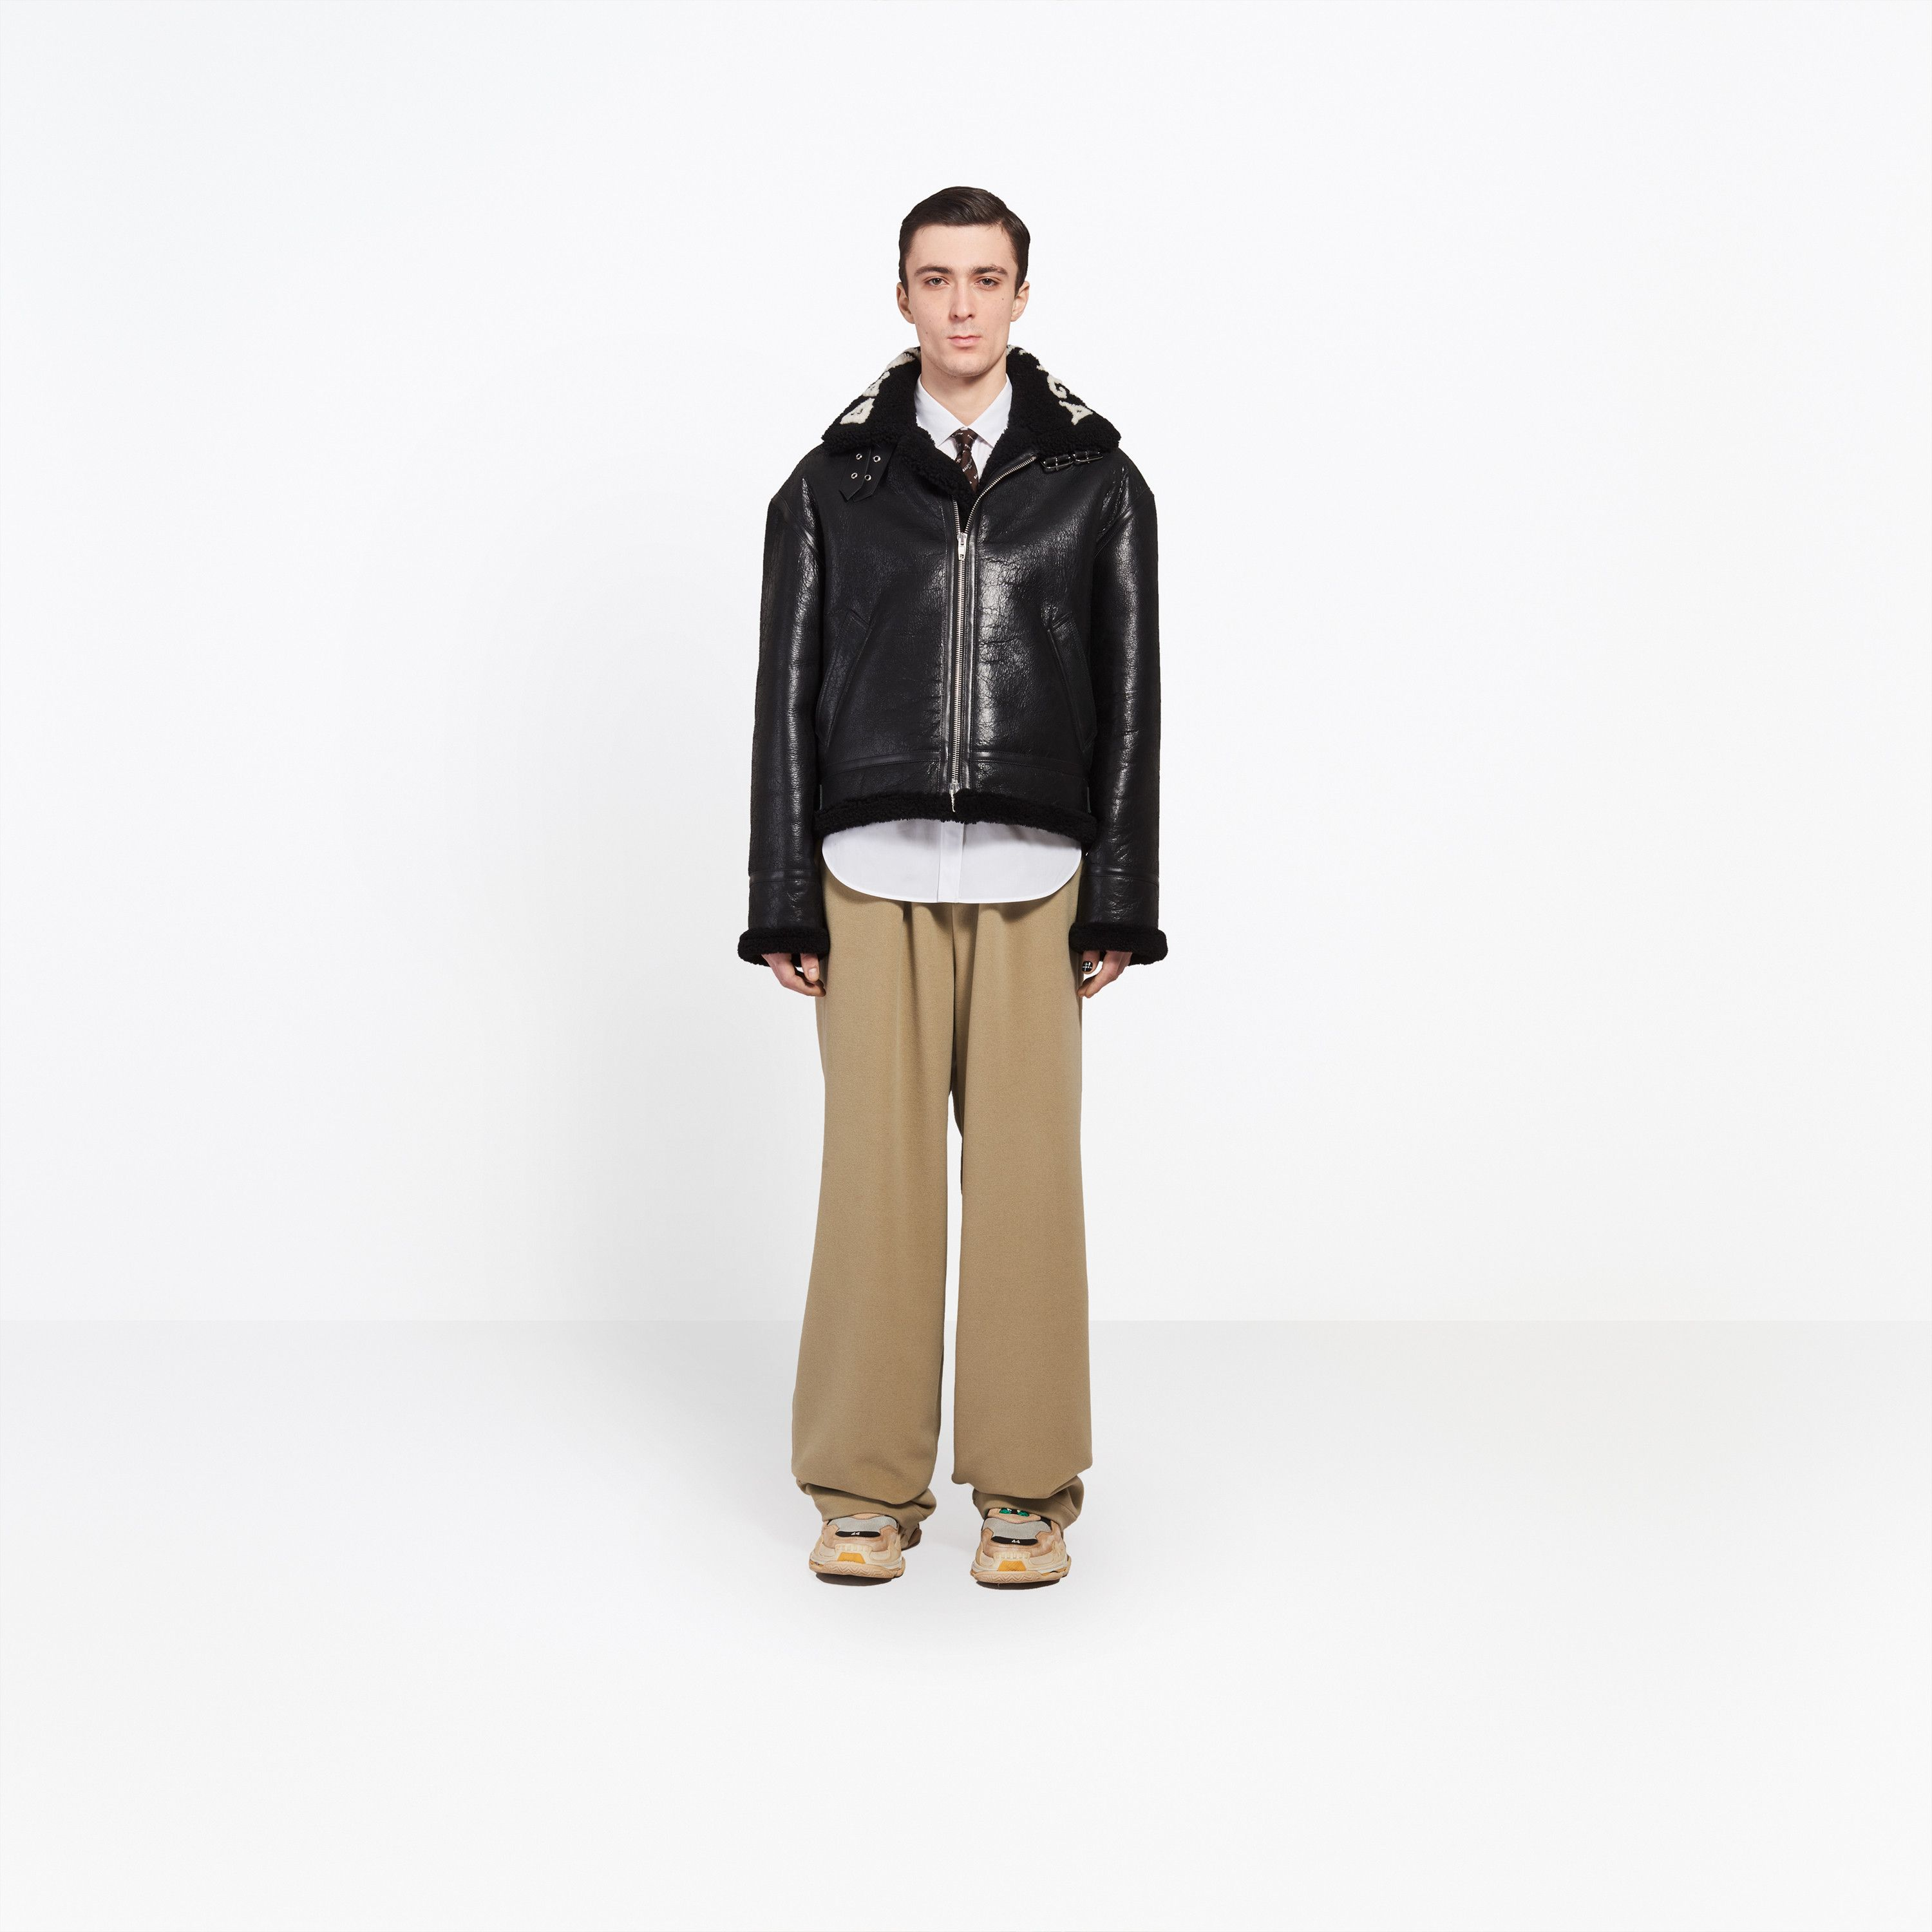 grand choix de 3c309 7439b Balenciaga Iconic bomber with logo incrusted in intarsia at ...